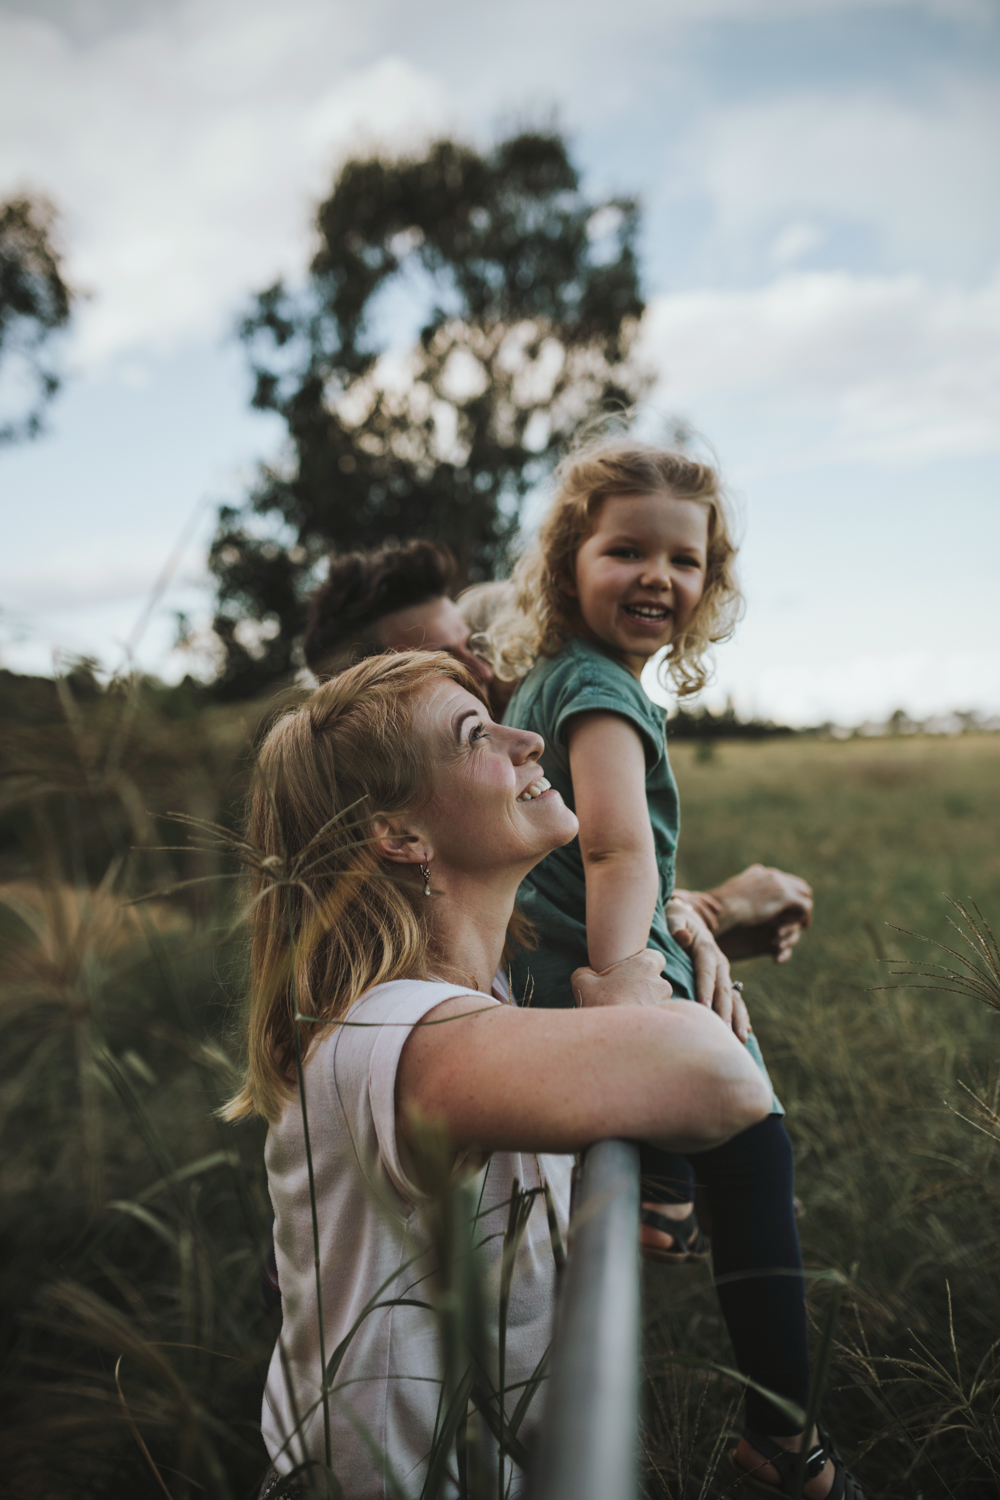 mother-daughter-outdoors-documentary-family-photography-siida-hobart.jpg